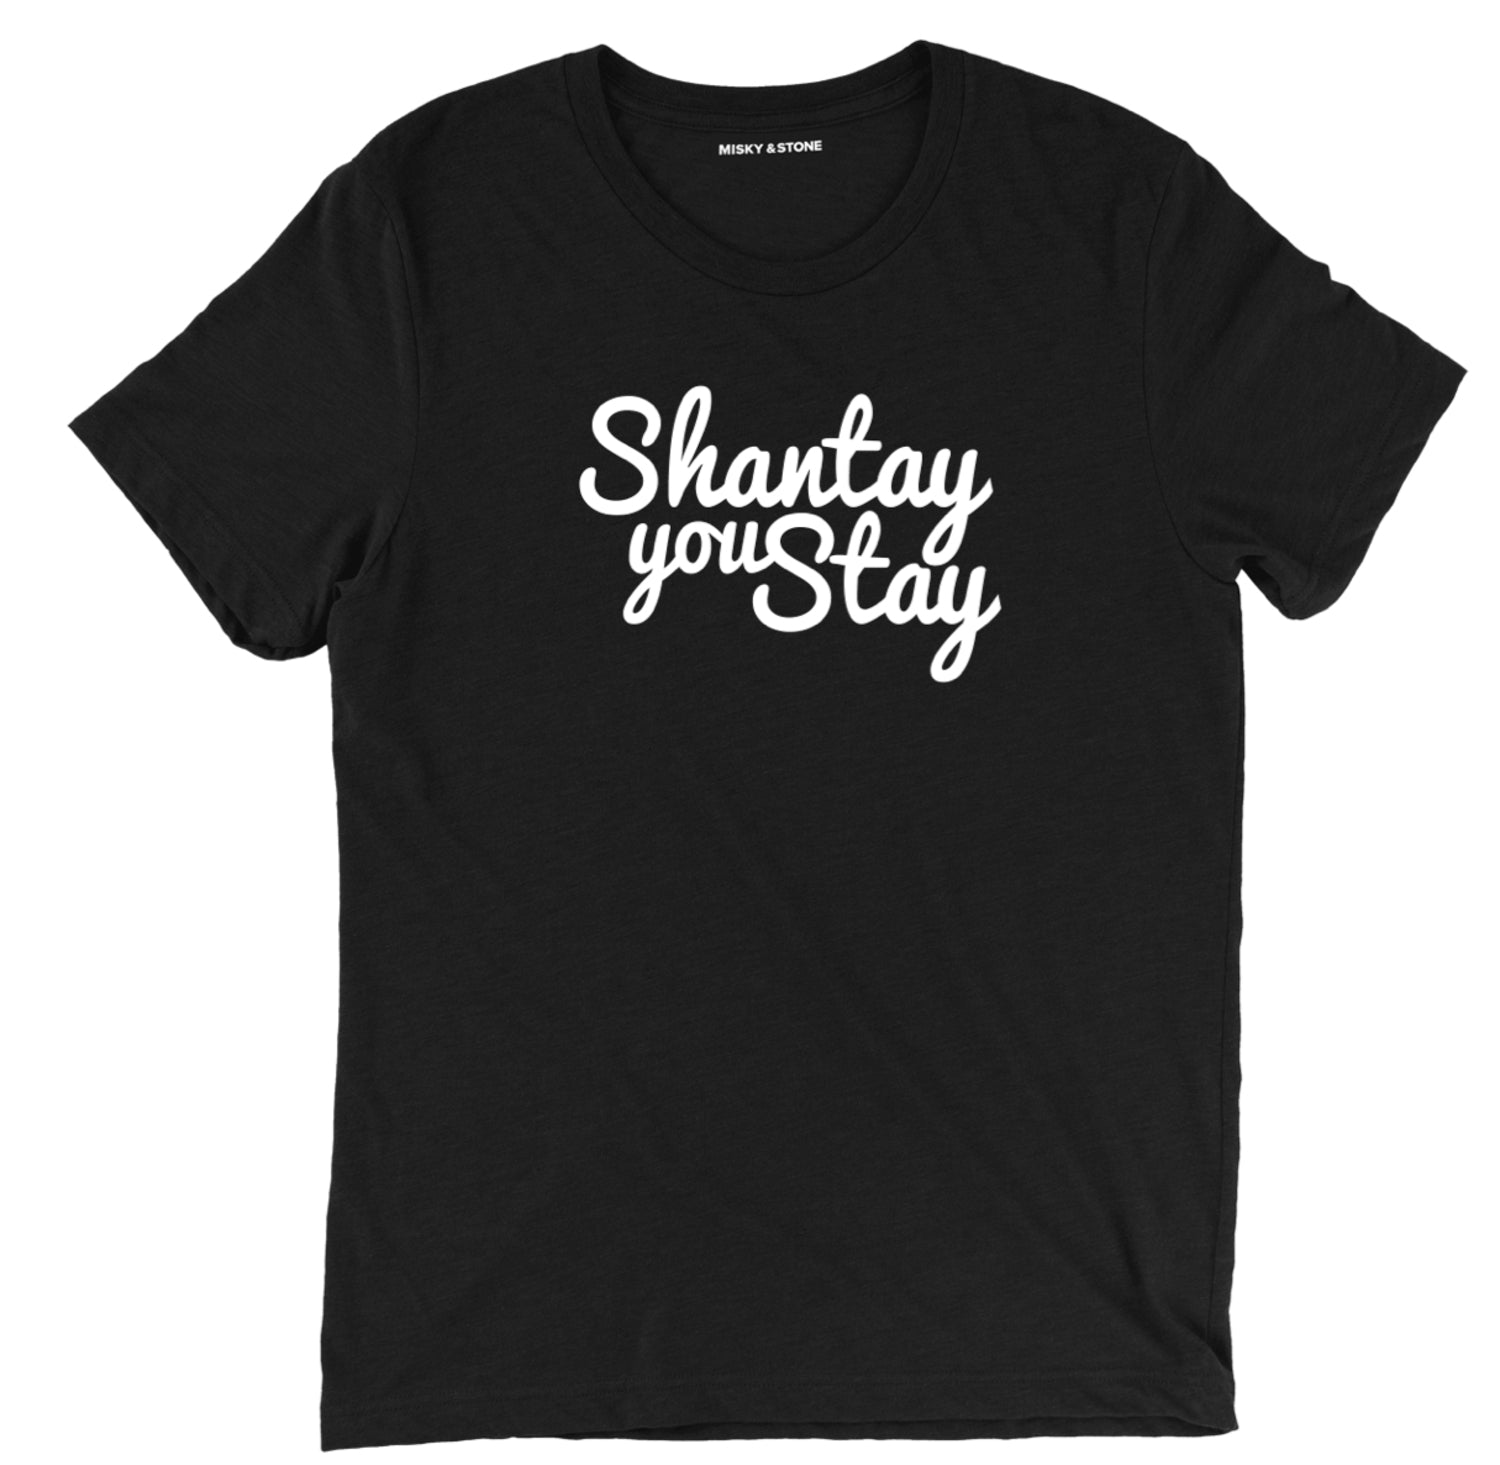 shantay you stay t shirt, shantay you stay tee, drag tee, drag race shirt, shantay tv show tee, shantay drag tee